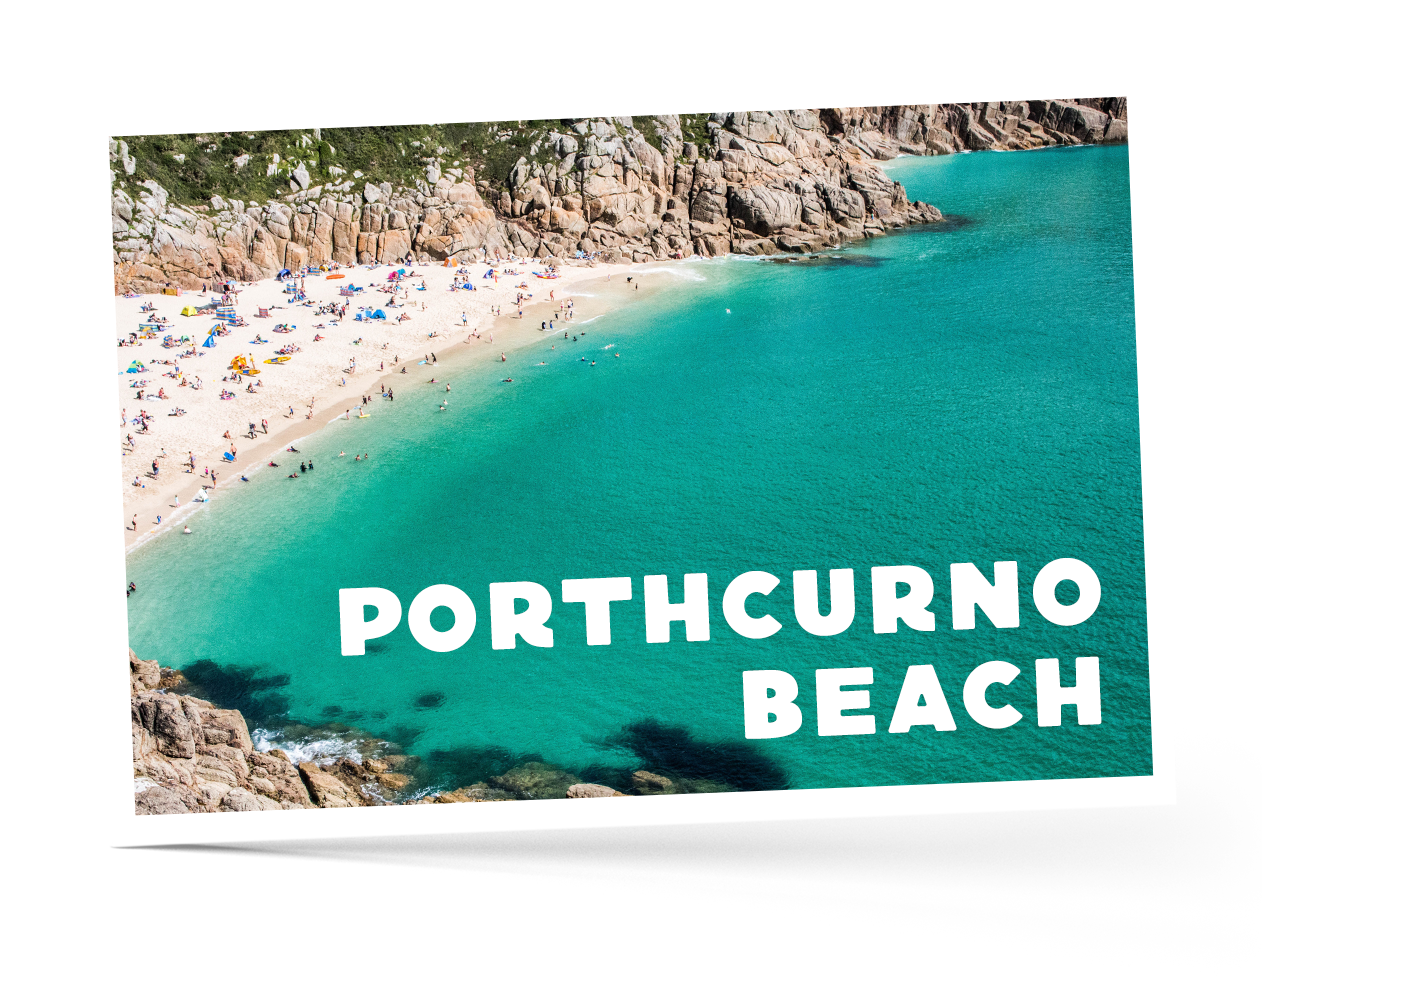 Aerial view of Porthcurno Beach in Cornwall